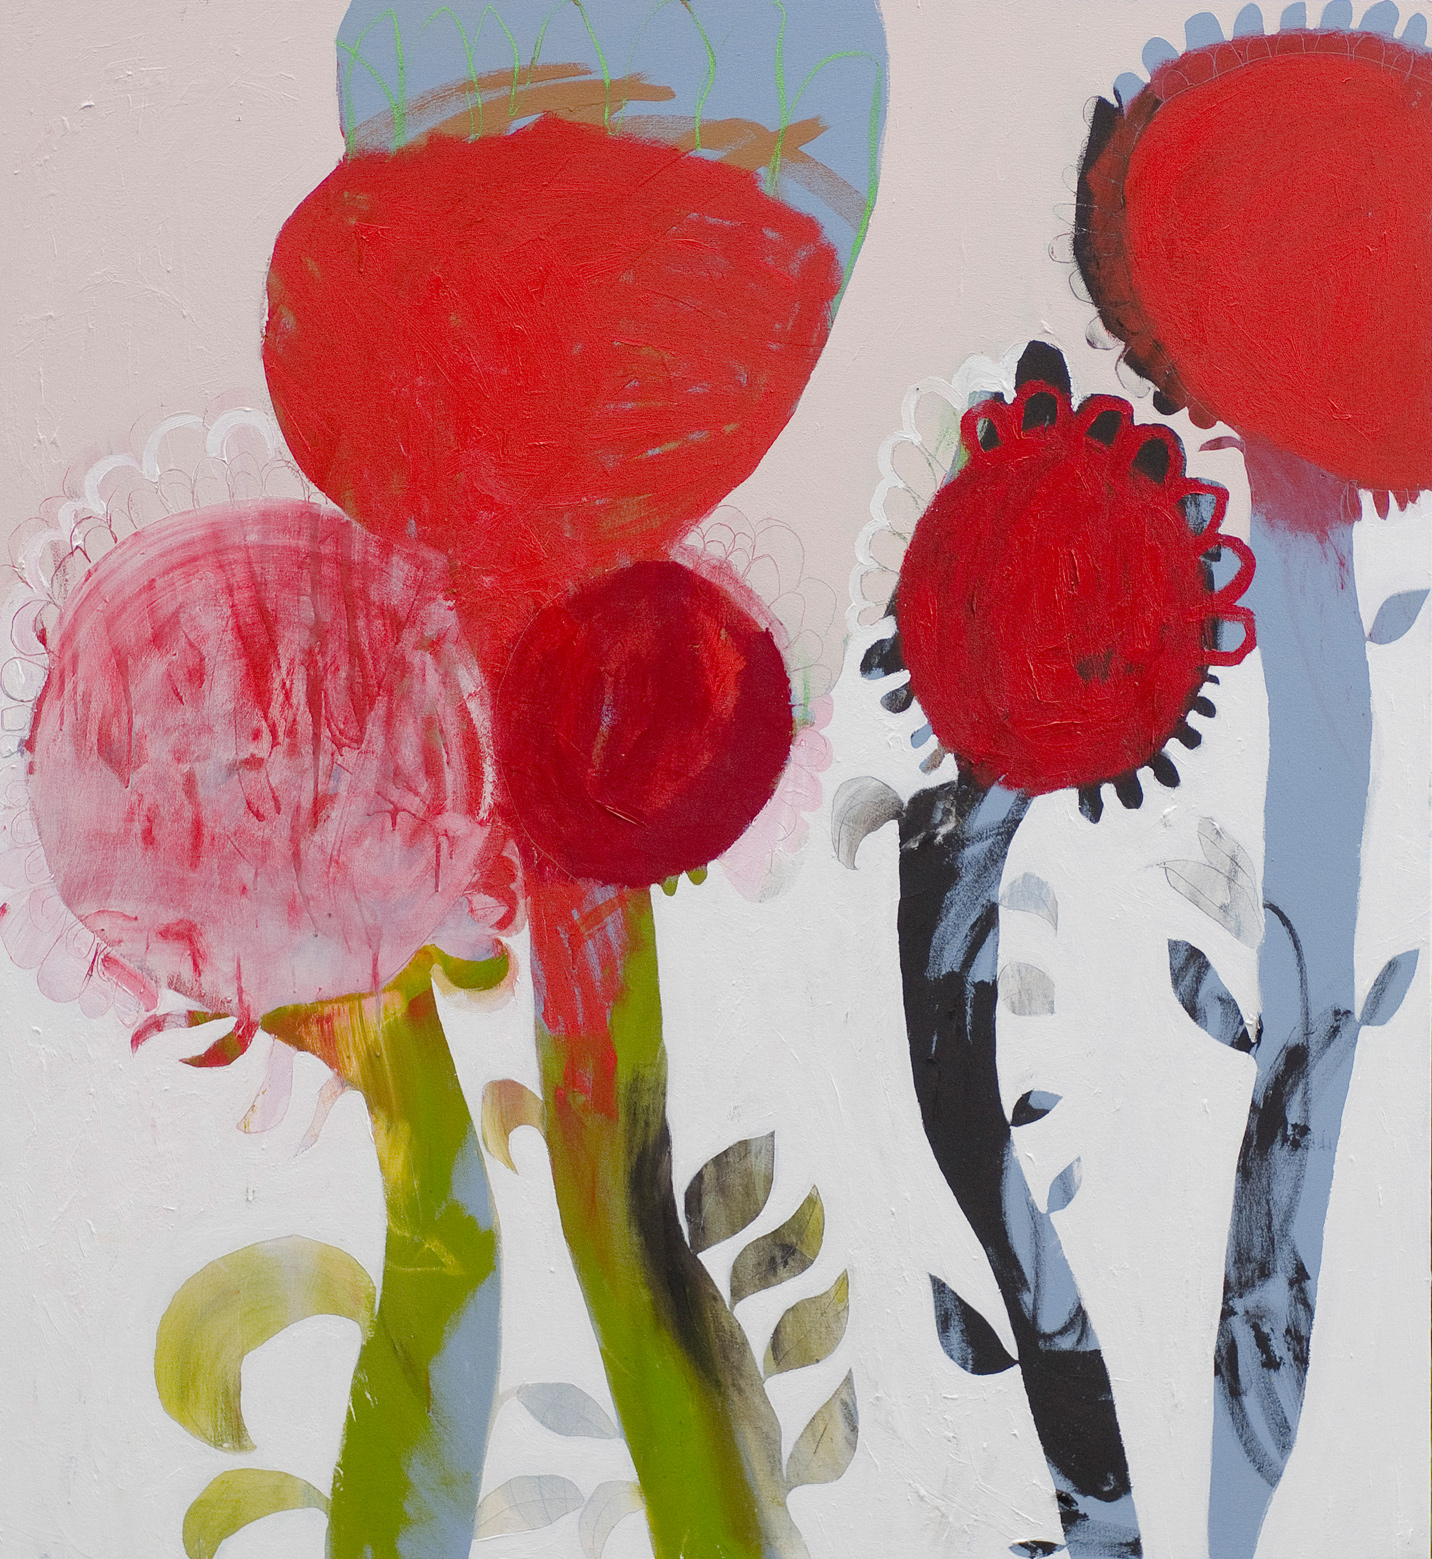 5 Beetroot, acrylic and charcoal on canvas, 152 x 137cm,